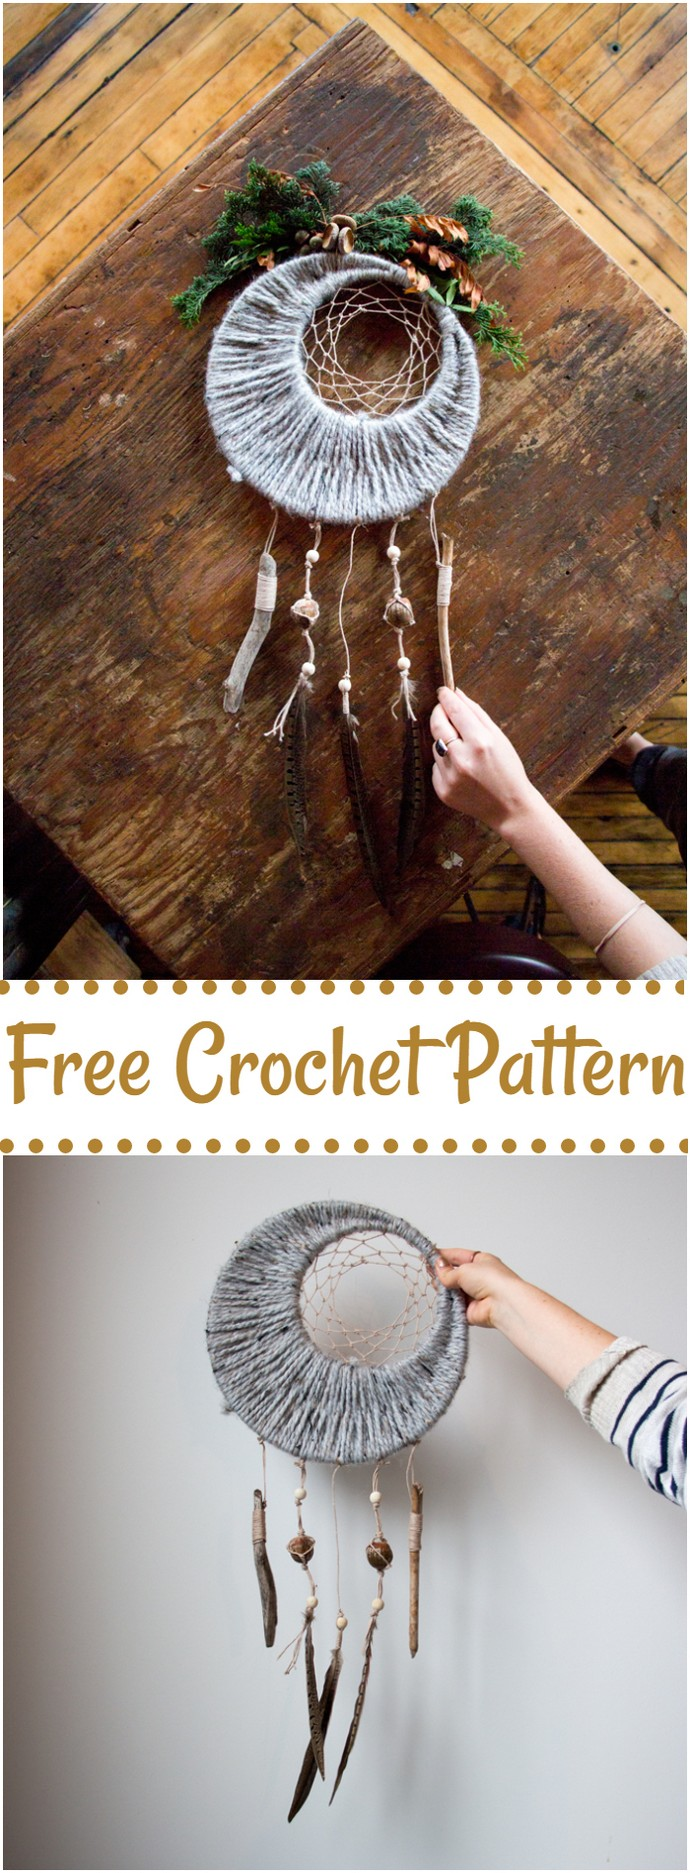 Free Crochet Fall Dreamcatcher